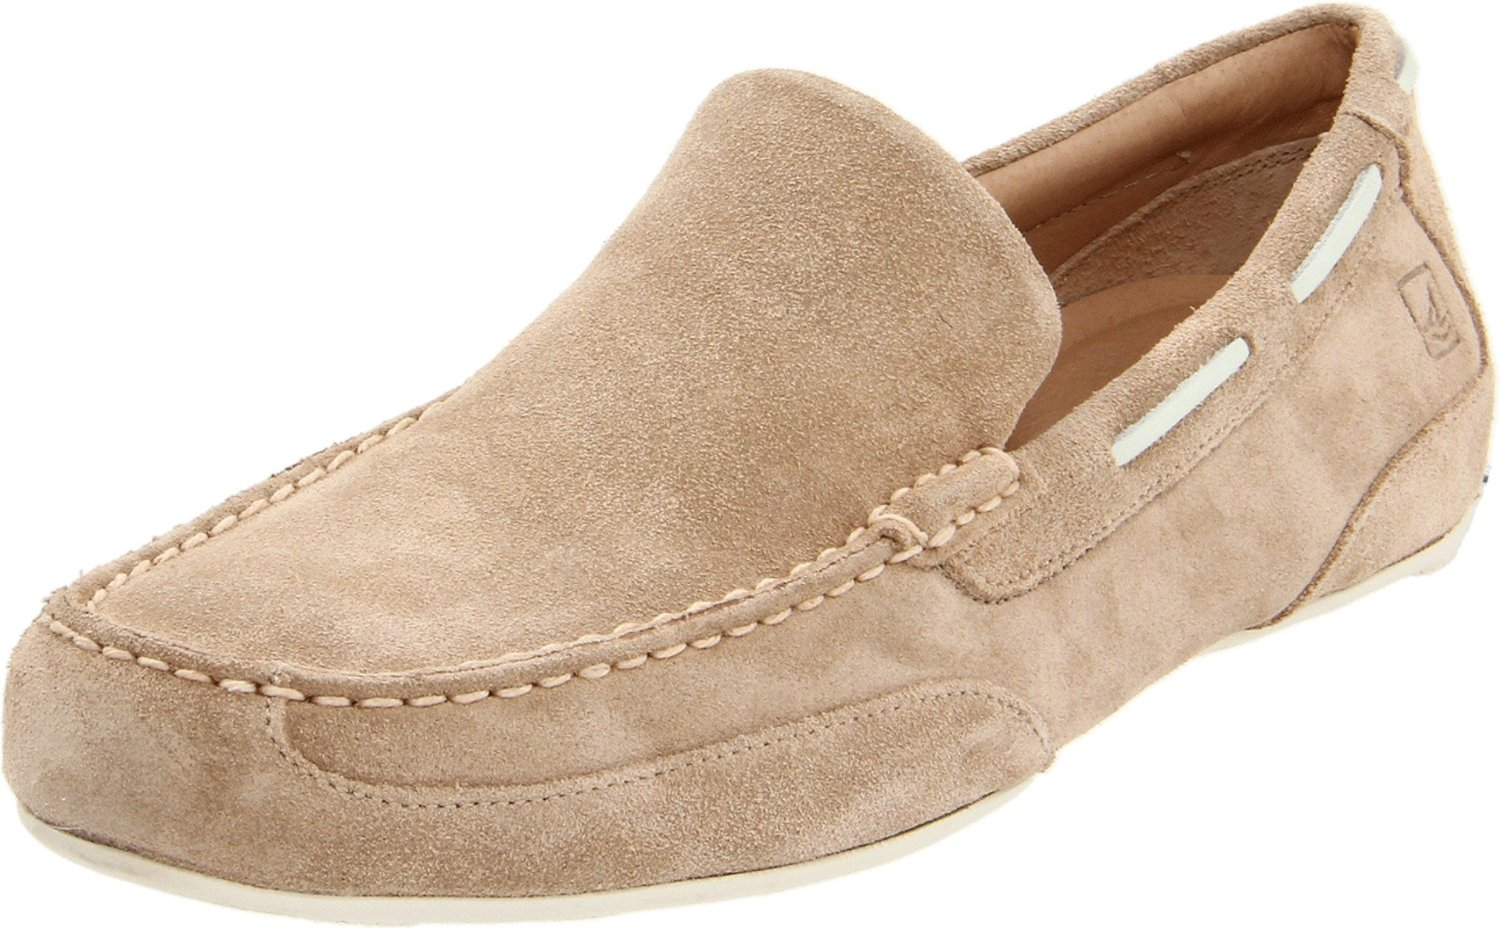 Sperry Mens Shoes With Khakis